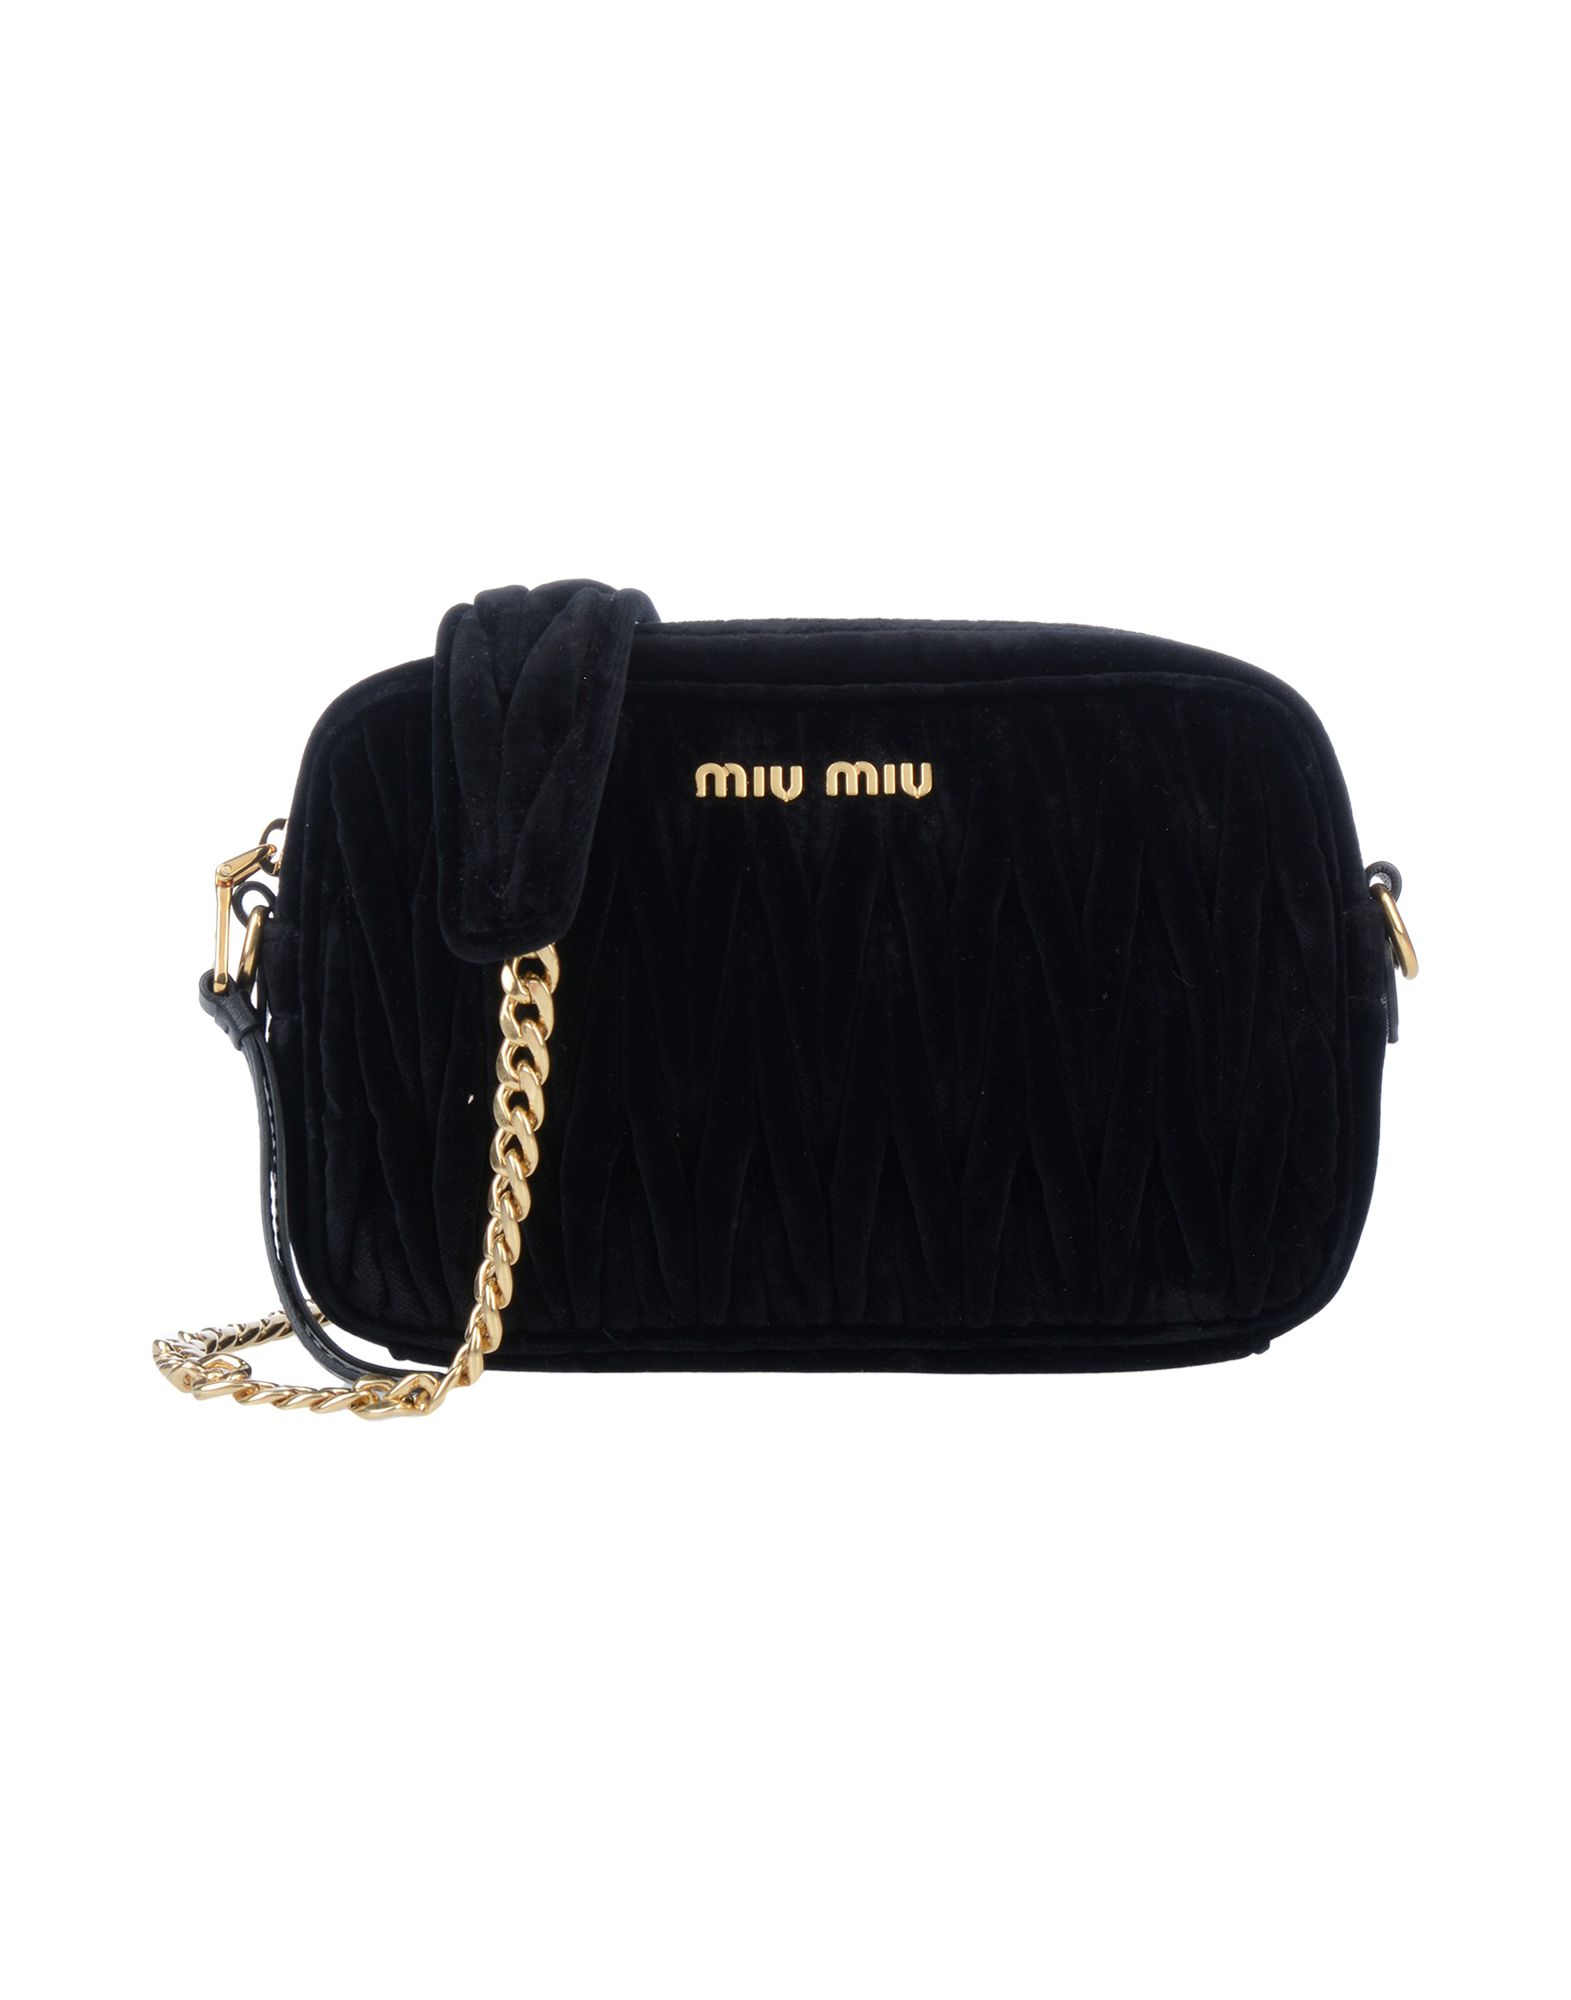 MIU MIU Cross-body bags - Item 45477185